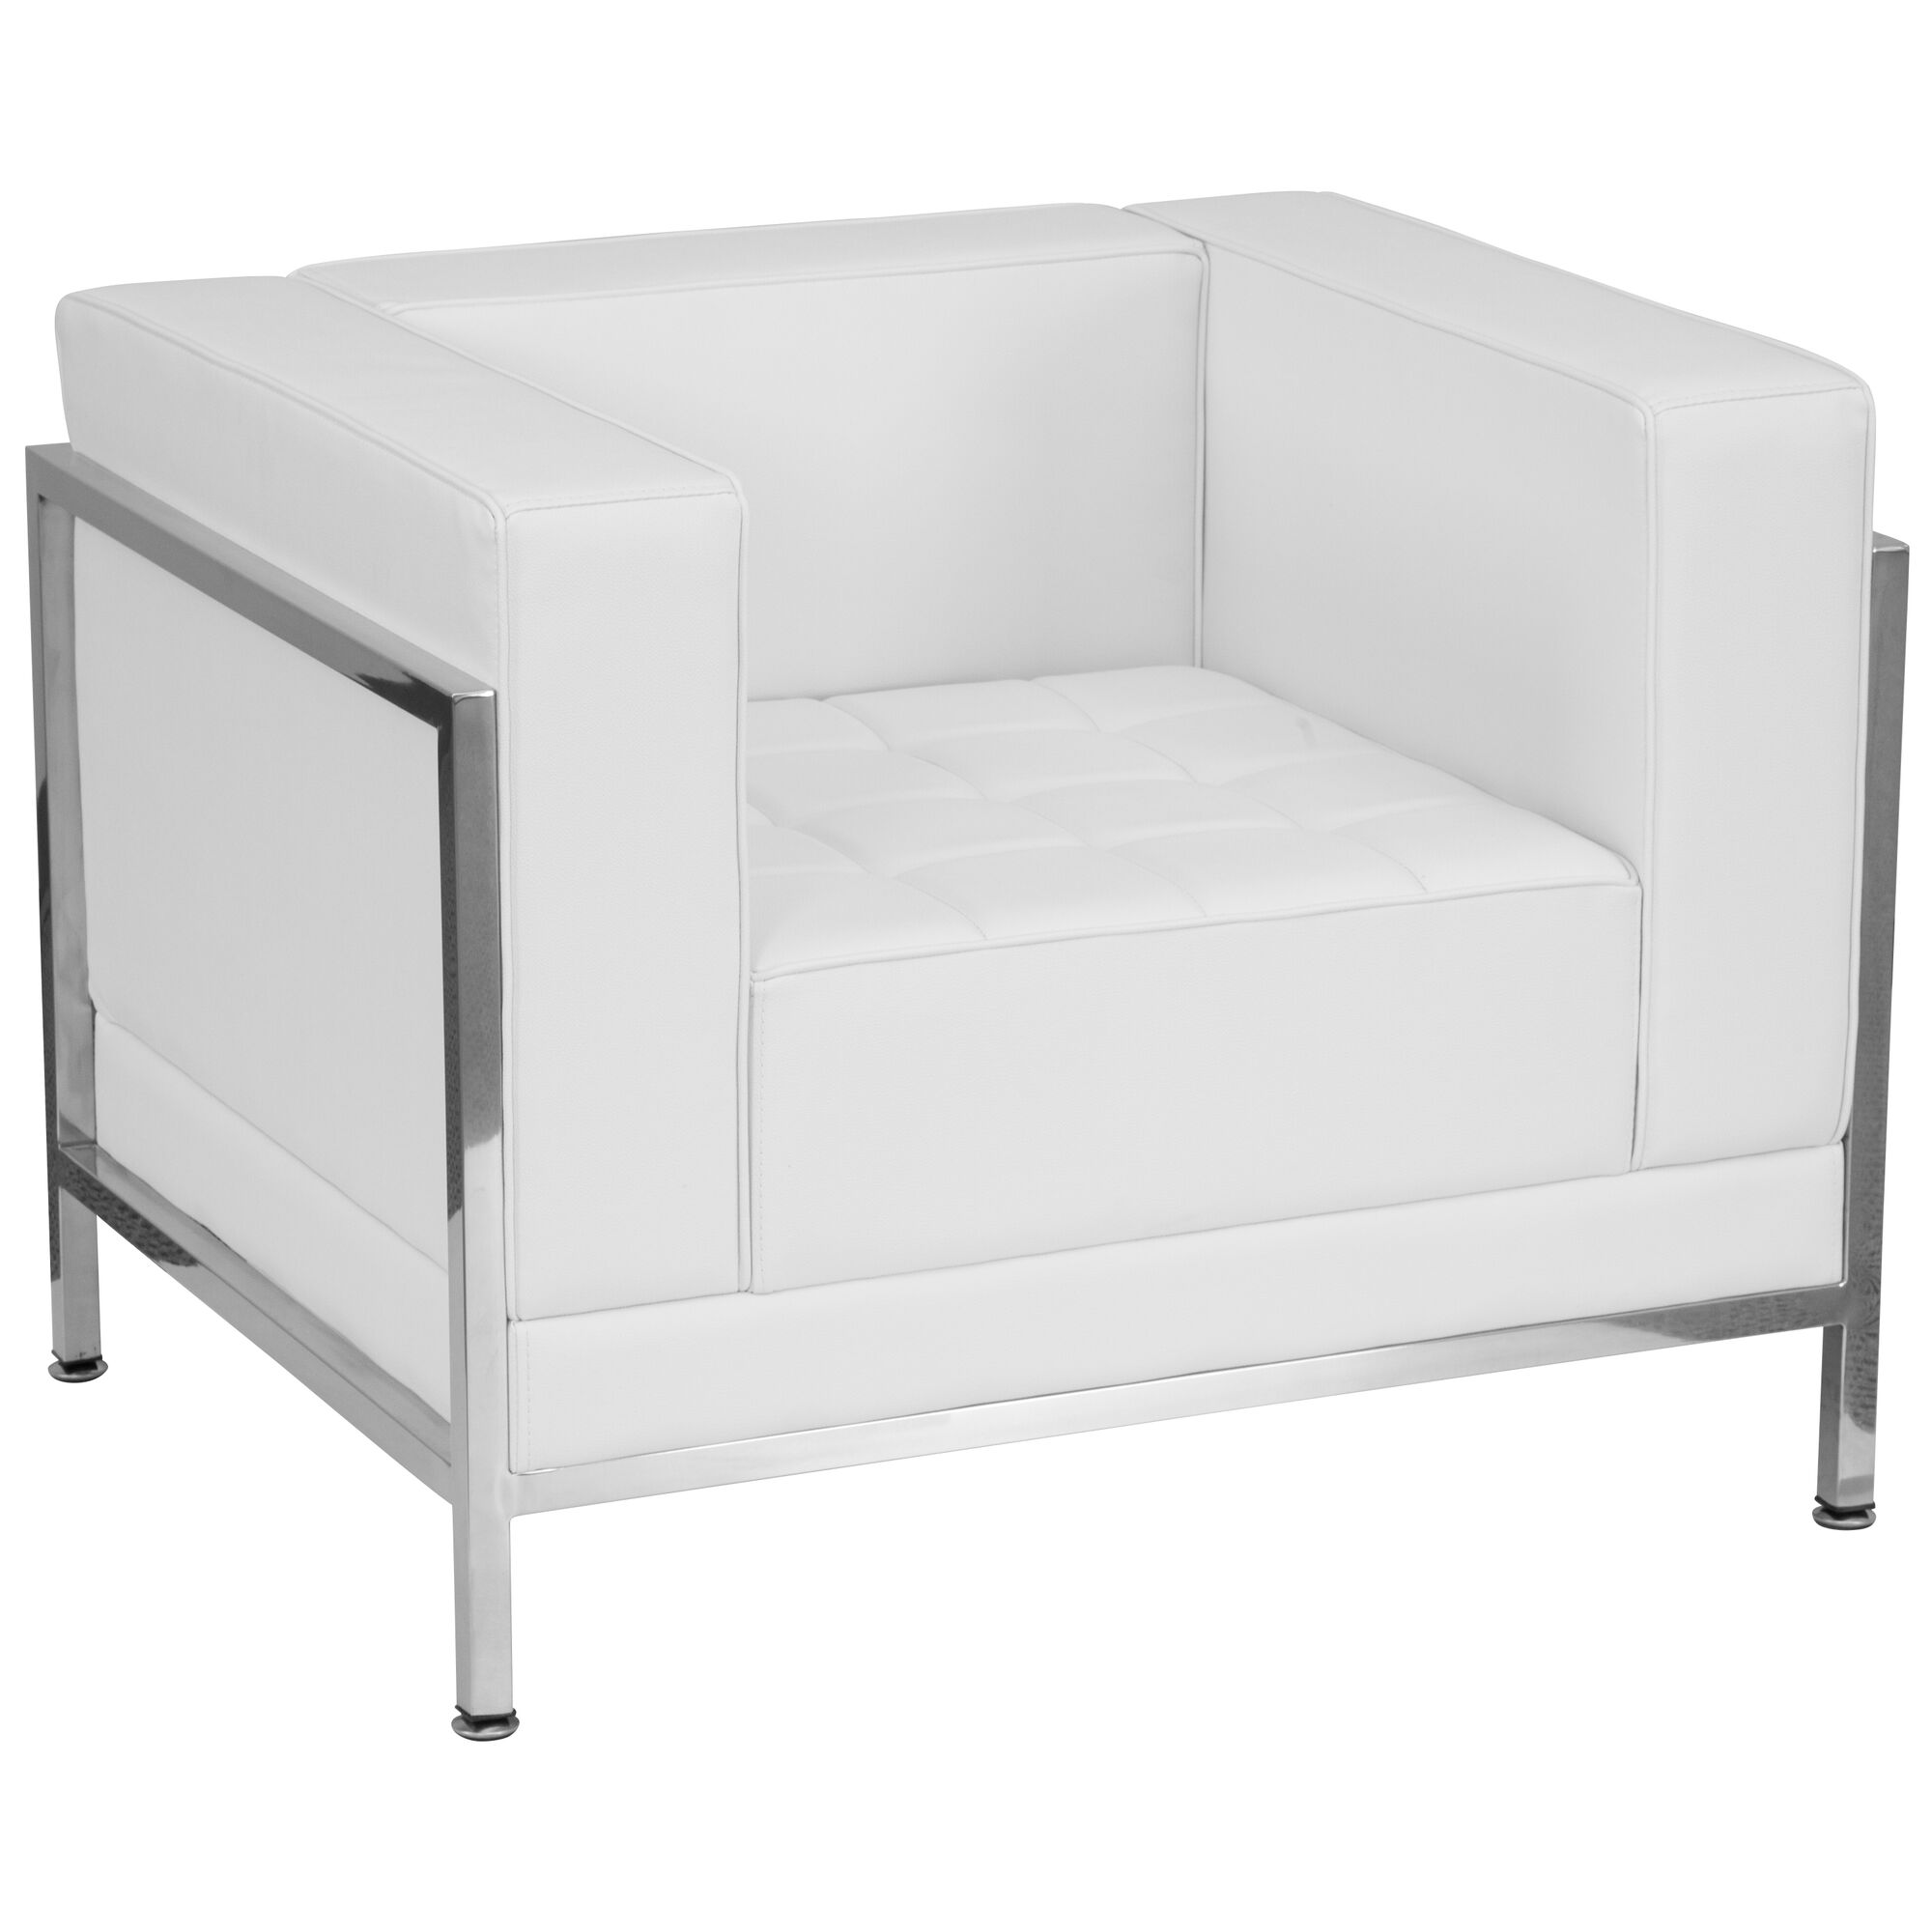 Amazing Hercules Imagination Series Contemporary Melrose White Leather Chair With Encasing Frame Cjindustries Chair Design For Home Cjindustriesco